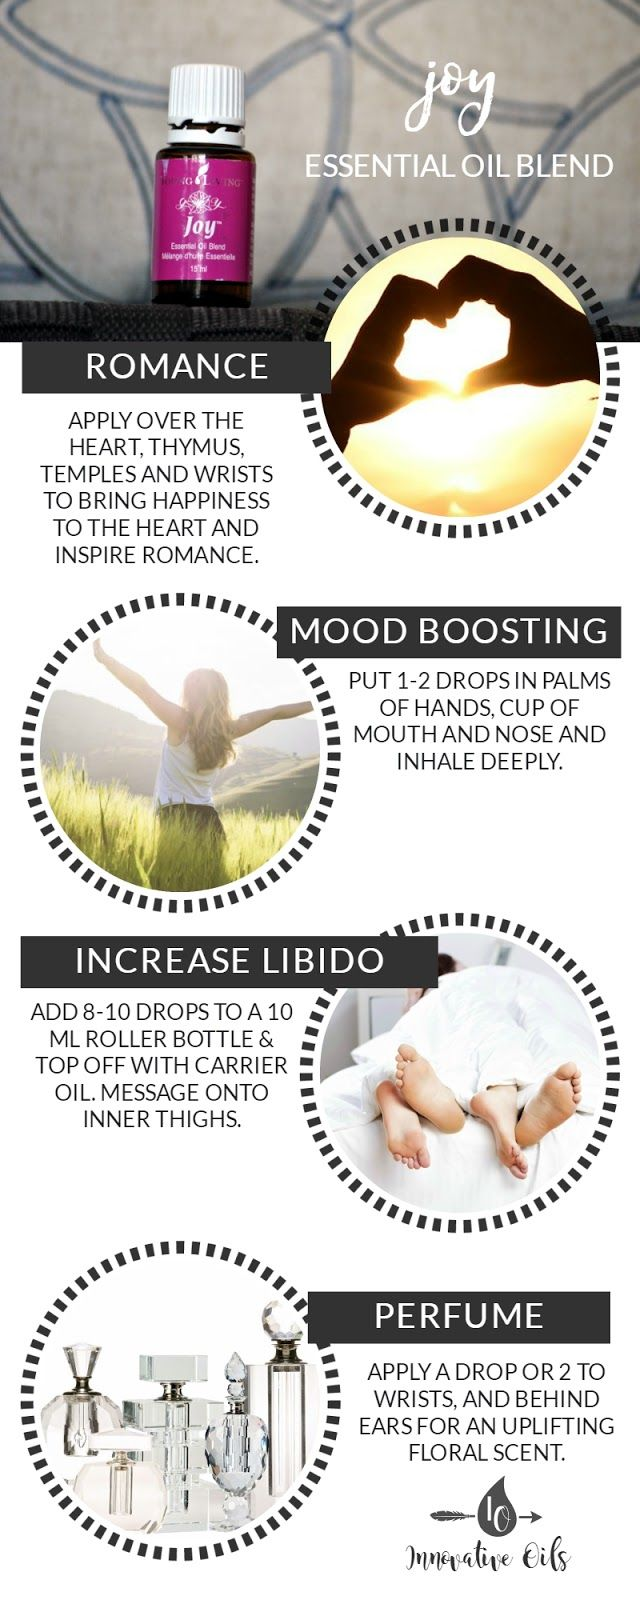 BENEFITS AND USES FOR JOY ESSENTIAL OIL BLEND